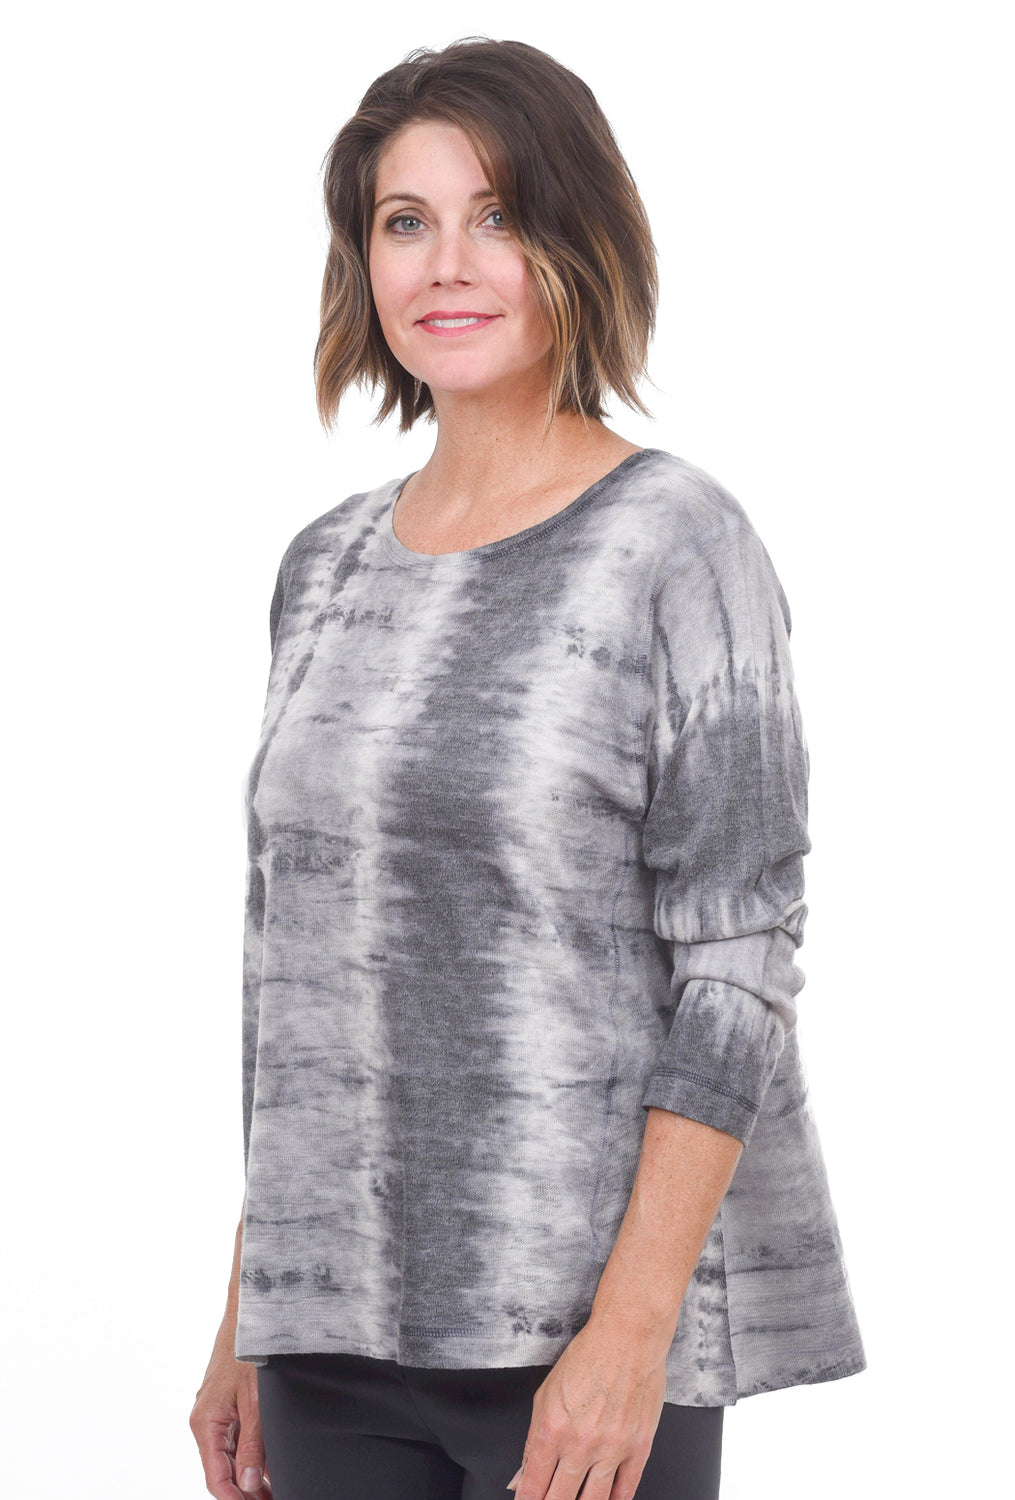 Skeleton Dye Top, Gray